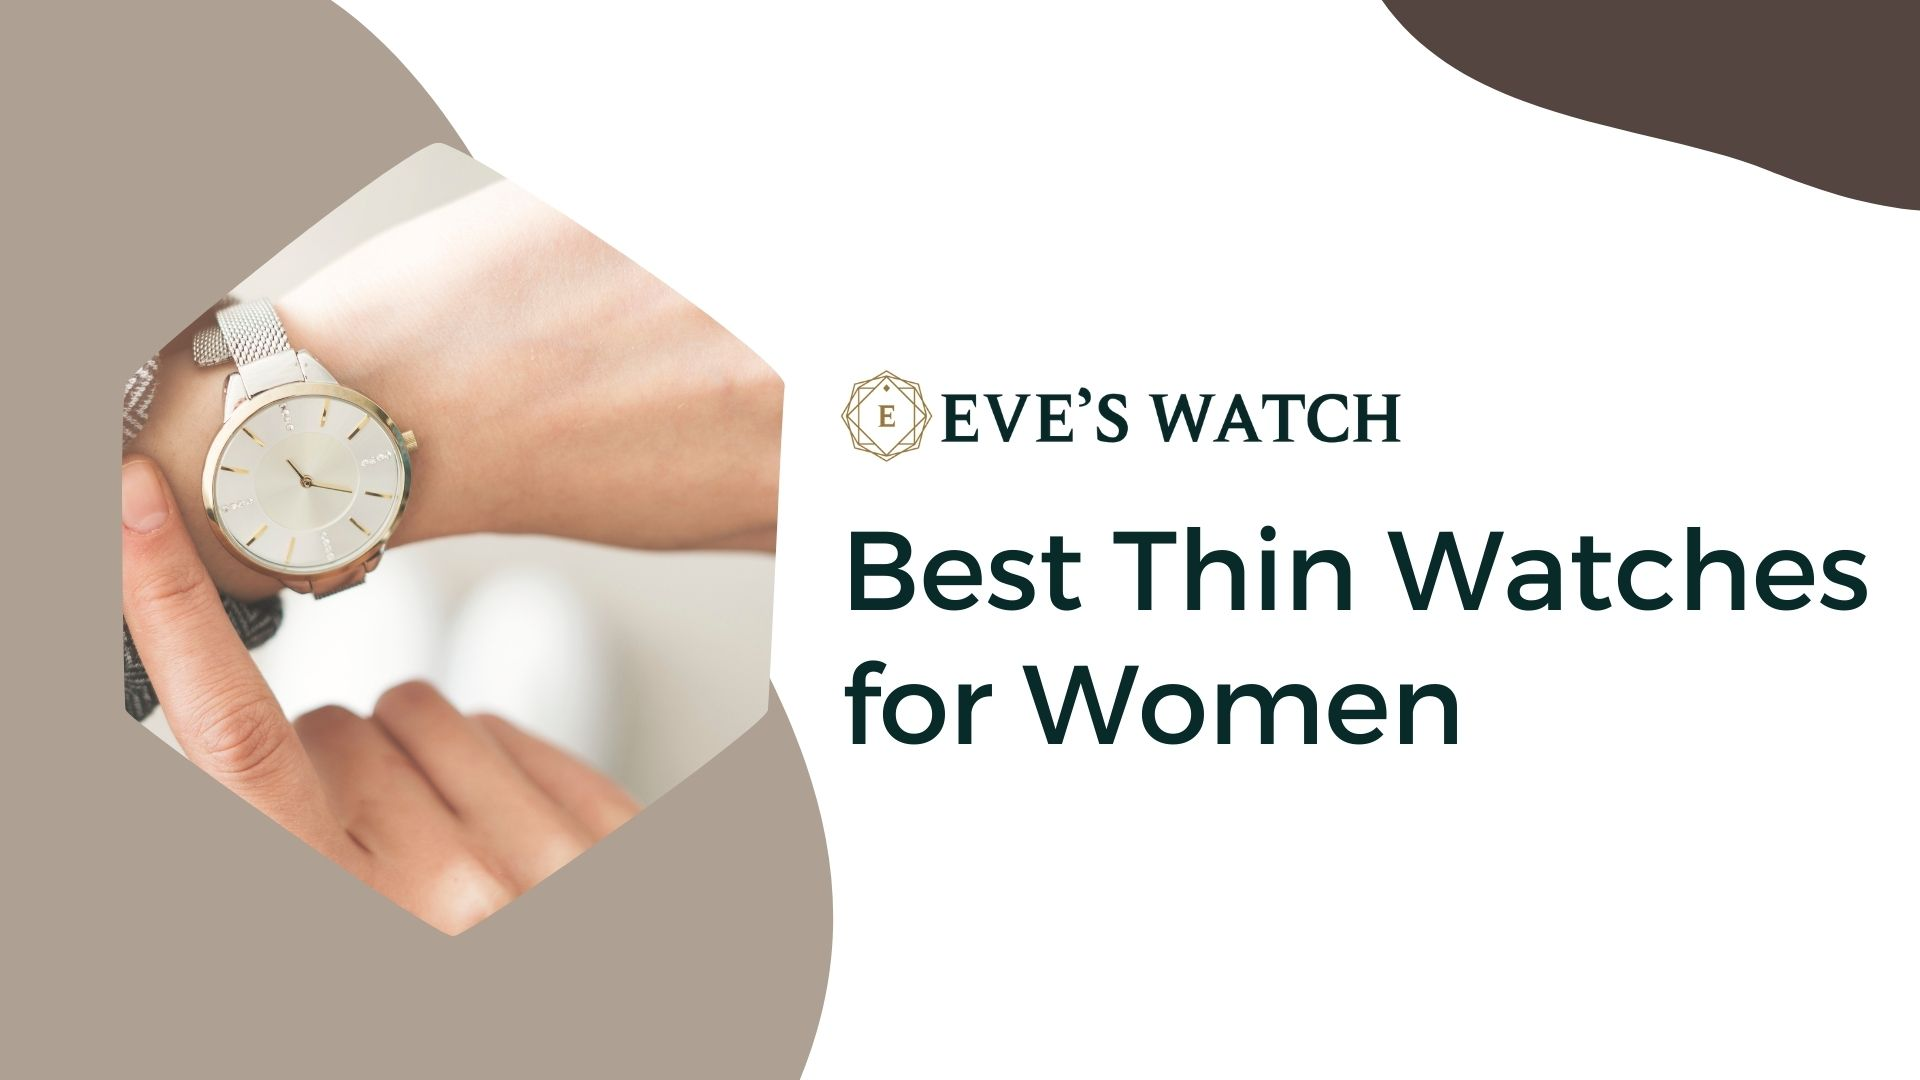 Best Thin Watches for Women